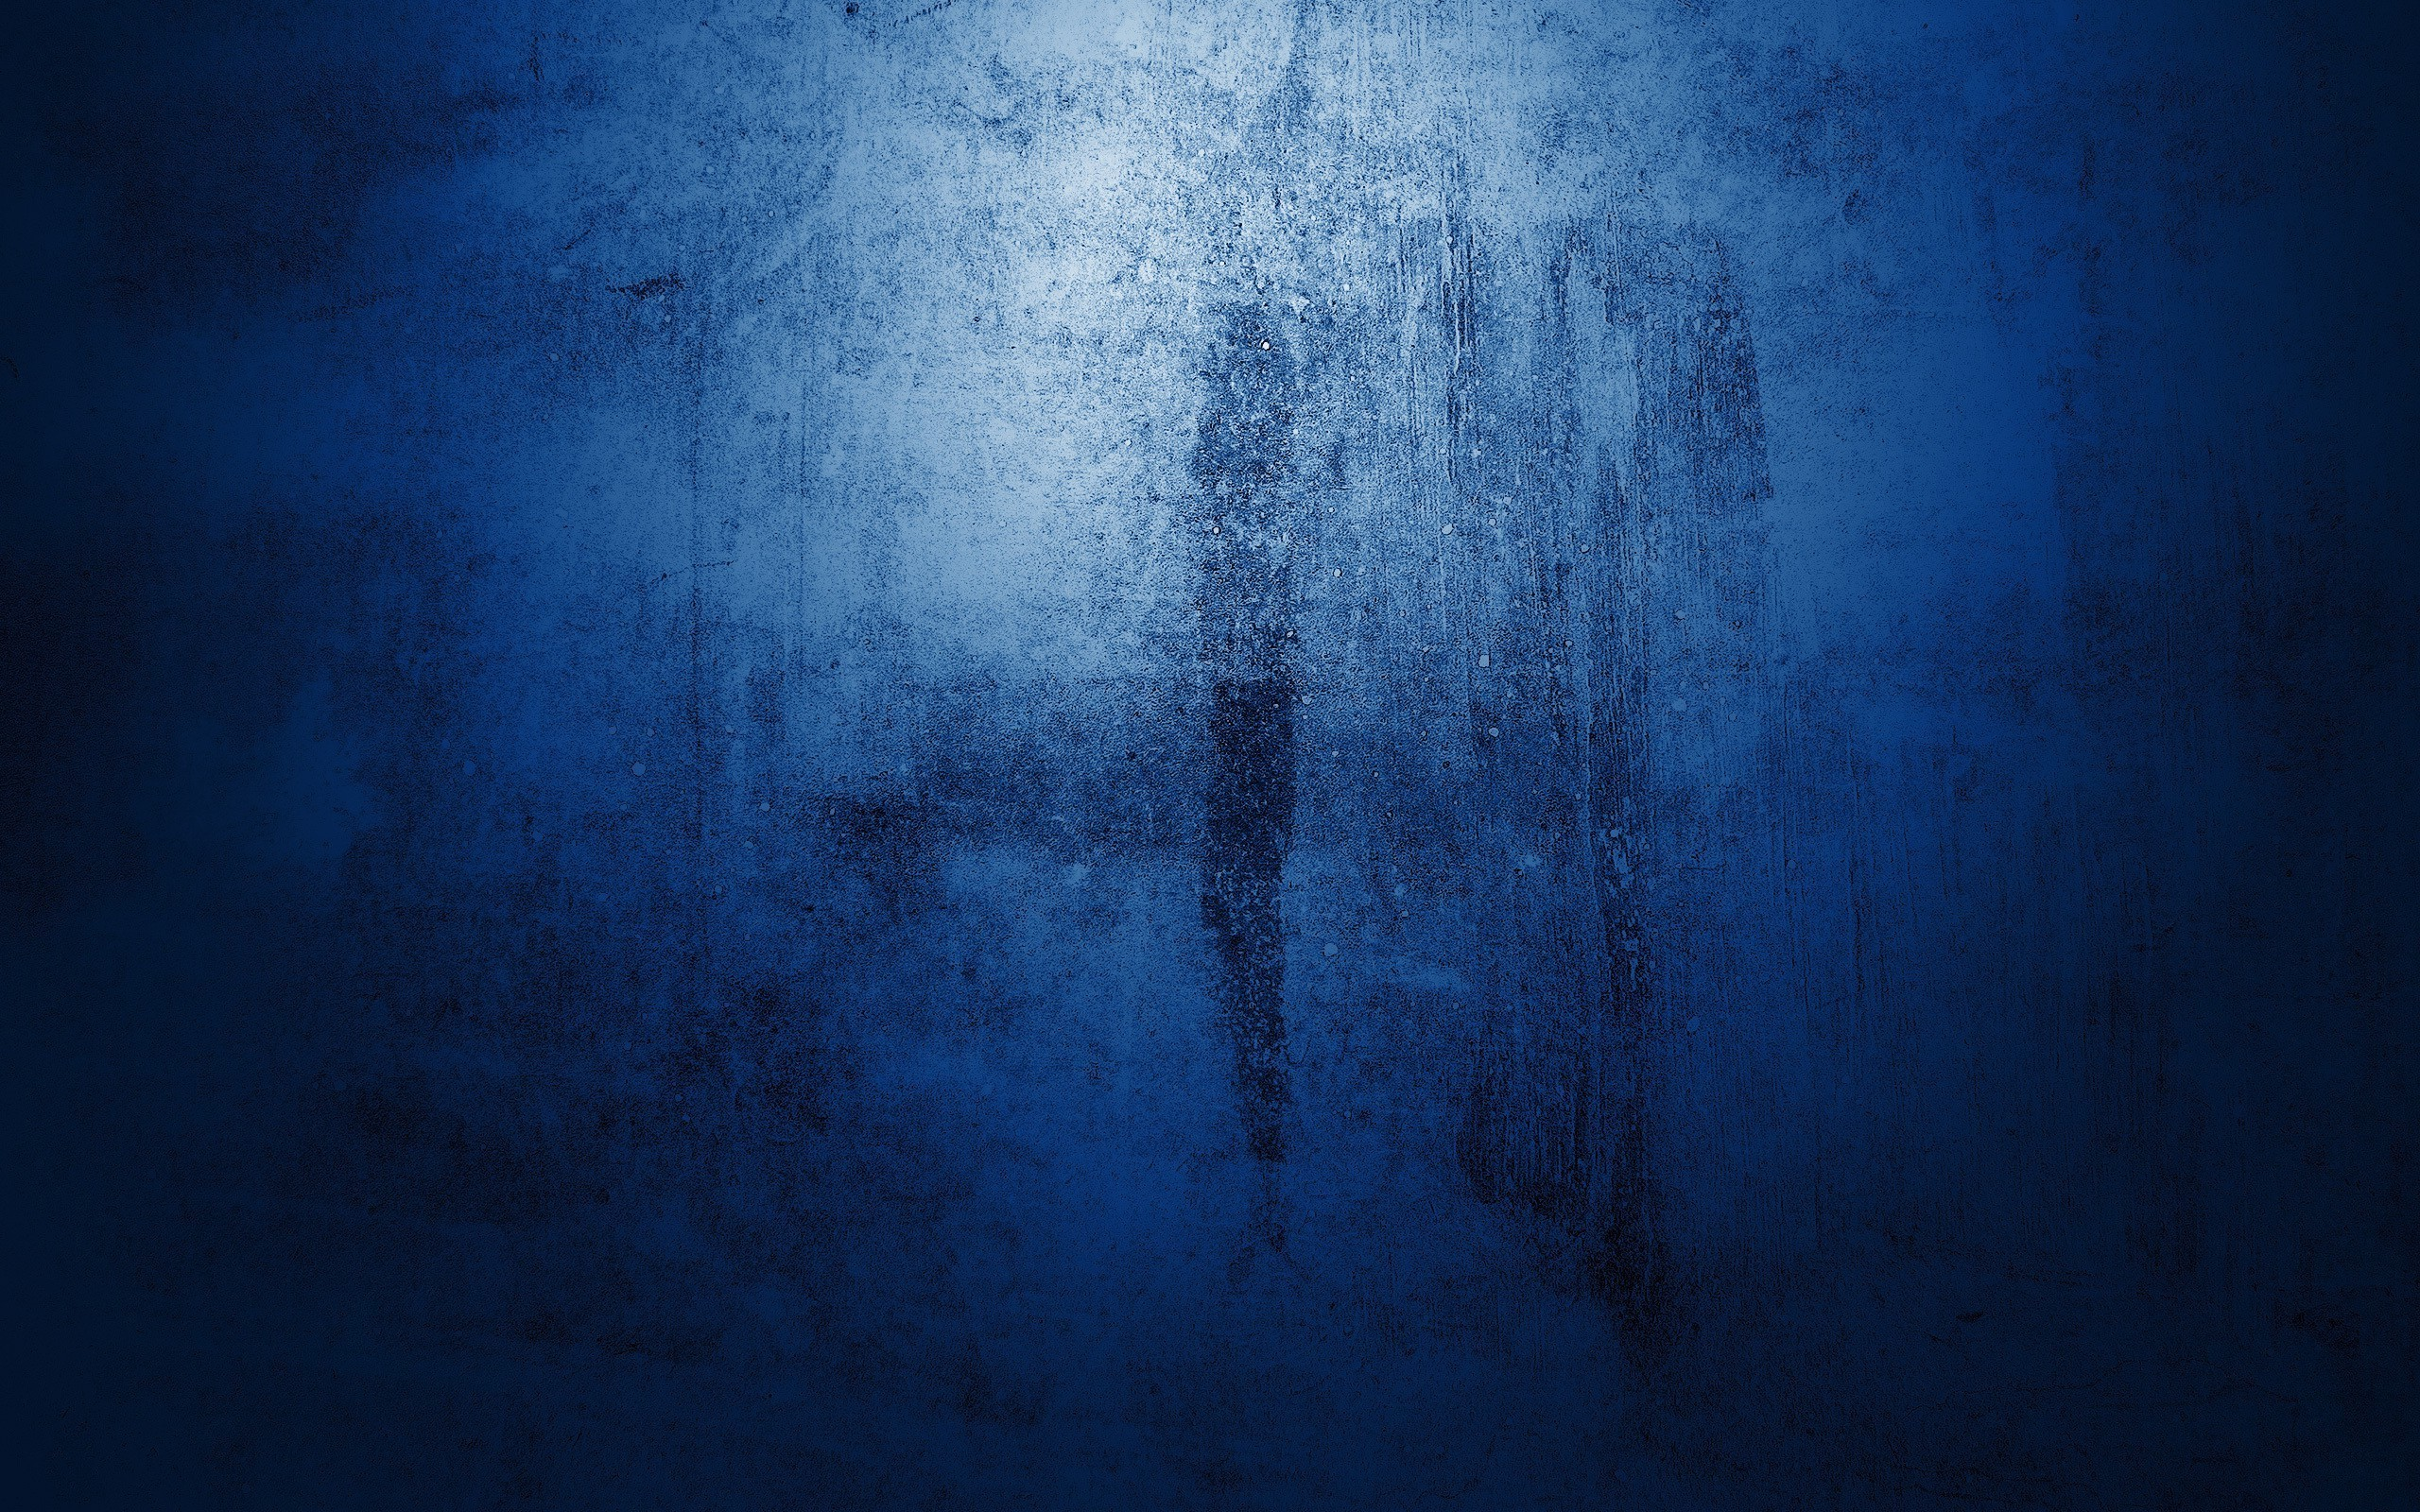 Full HD Wallpapers Backgrounds, Blue, Grunge #10201